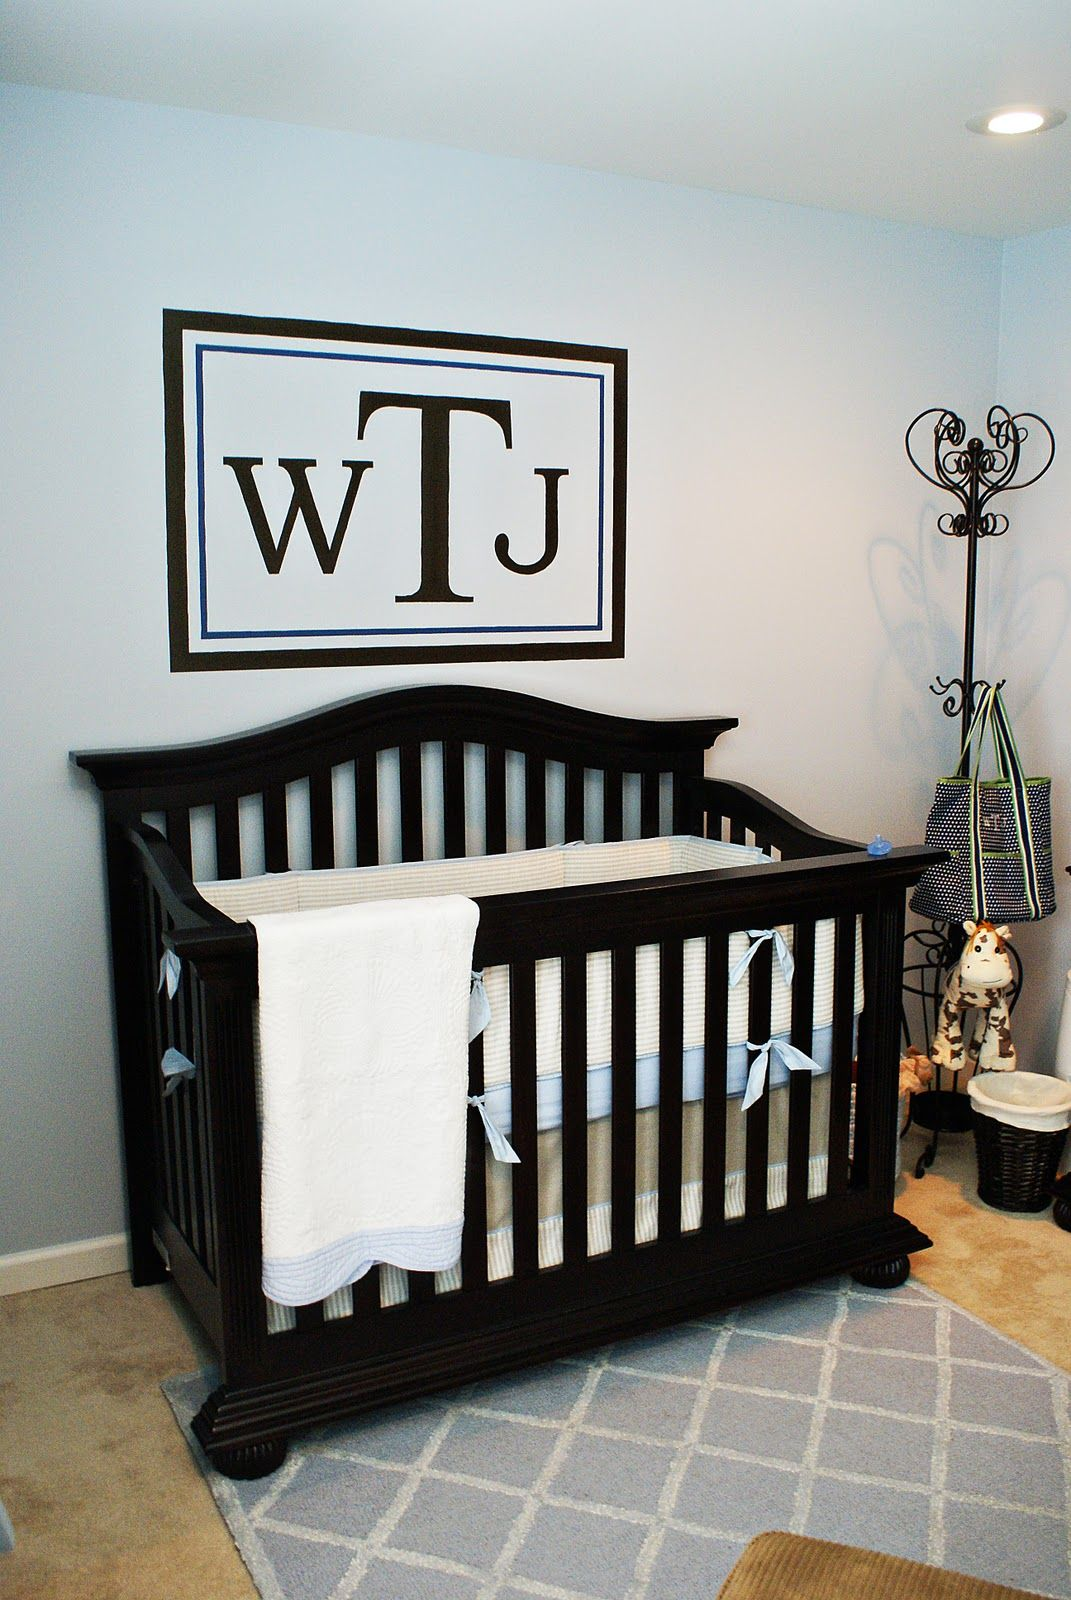 Baby Boy Room Mural Ideas: Baby Boy Rooms - Google Search